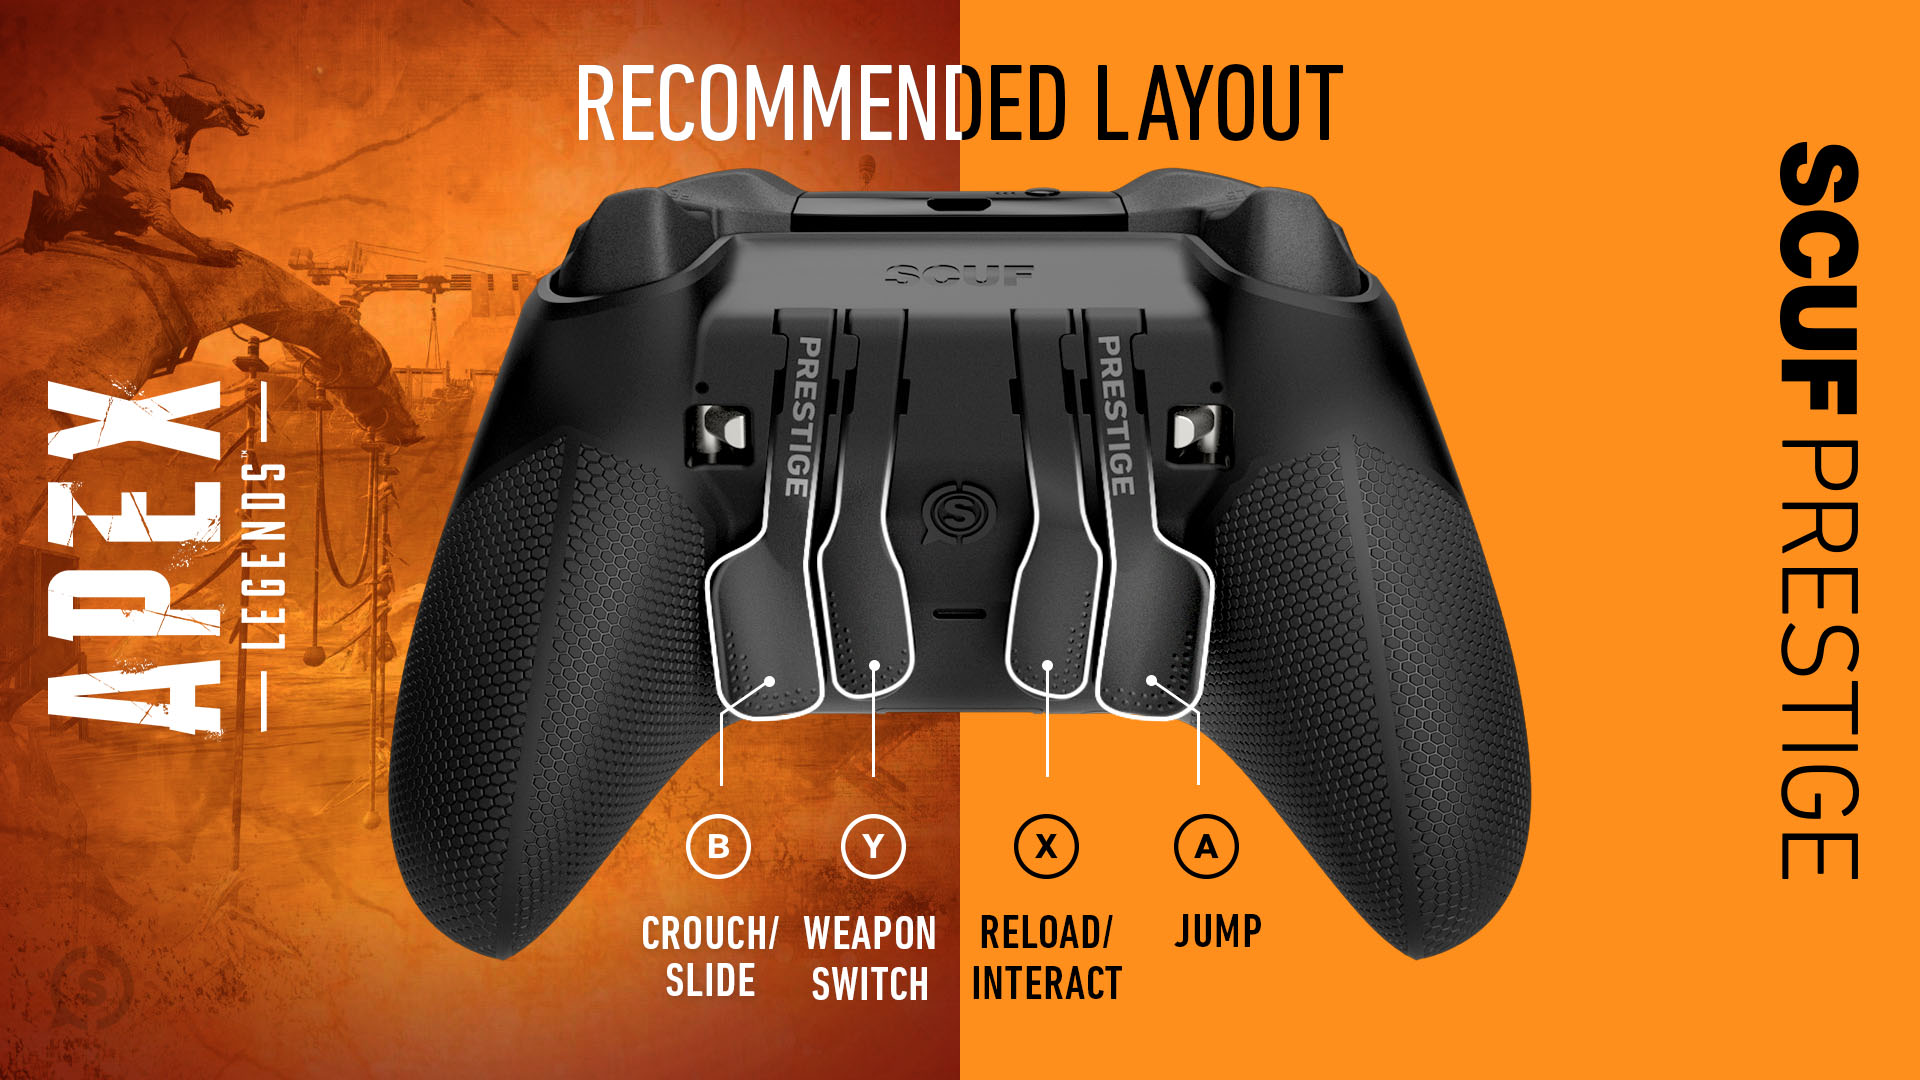 Xbox Series X Controller Setup Apex Legends Xbox Series S Controller Setup Apex Legends SCUF PRESTIGE